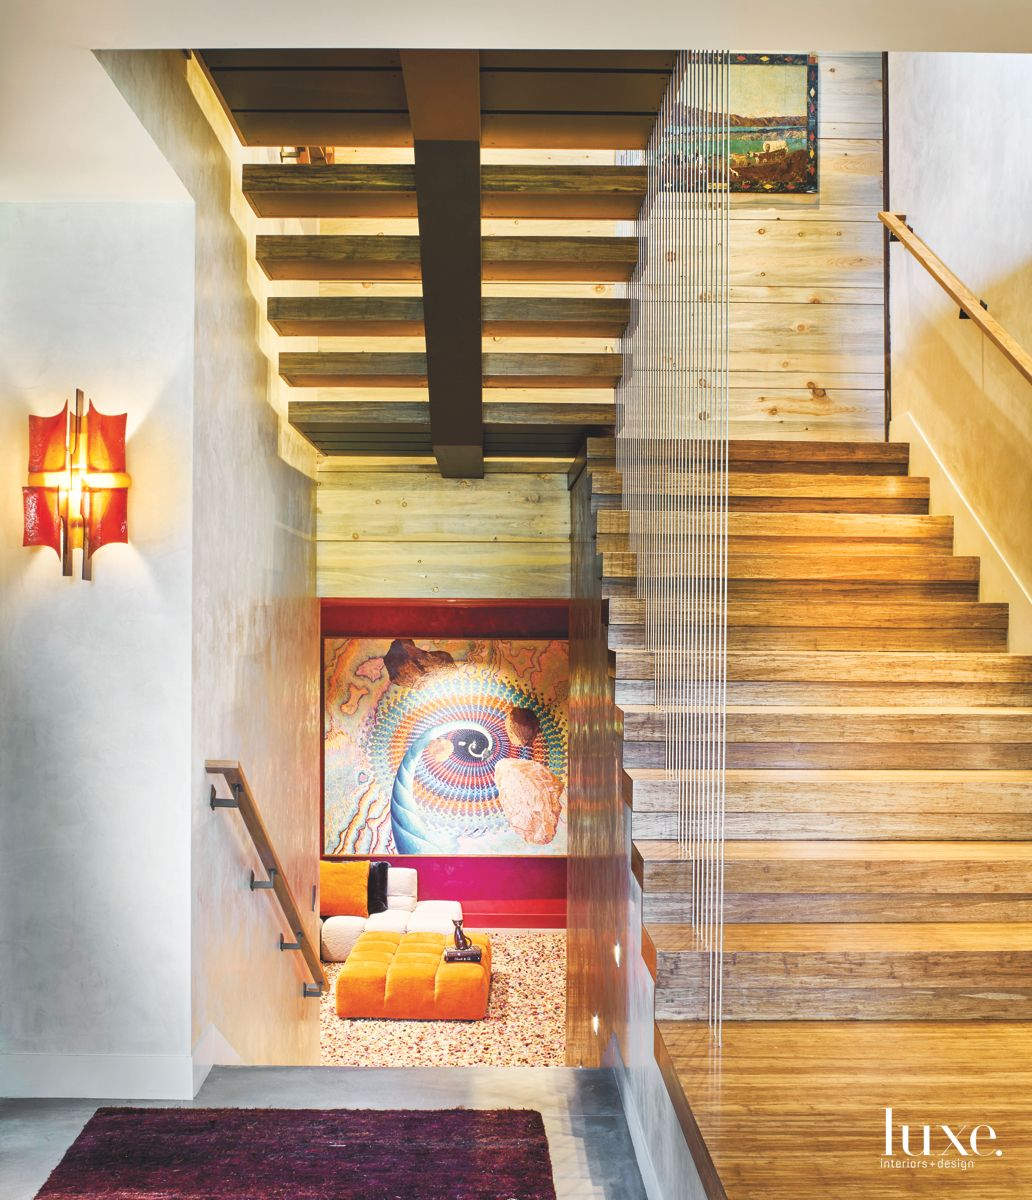 Artful Stairwell with Bamboo Detailing and Abstract Art